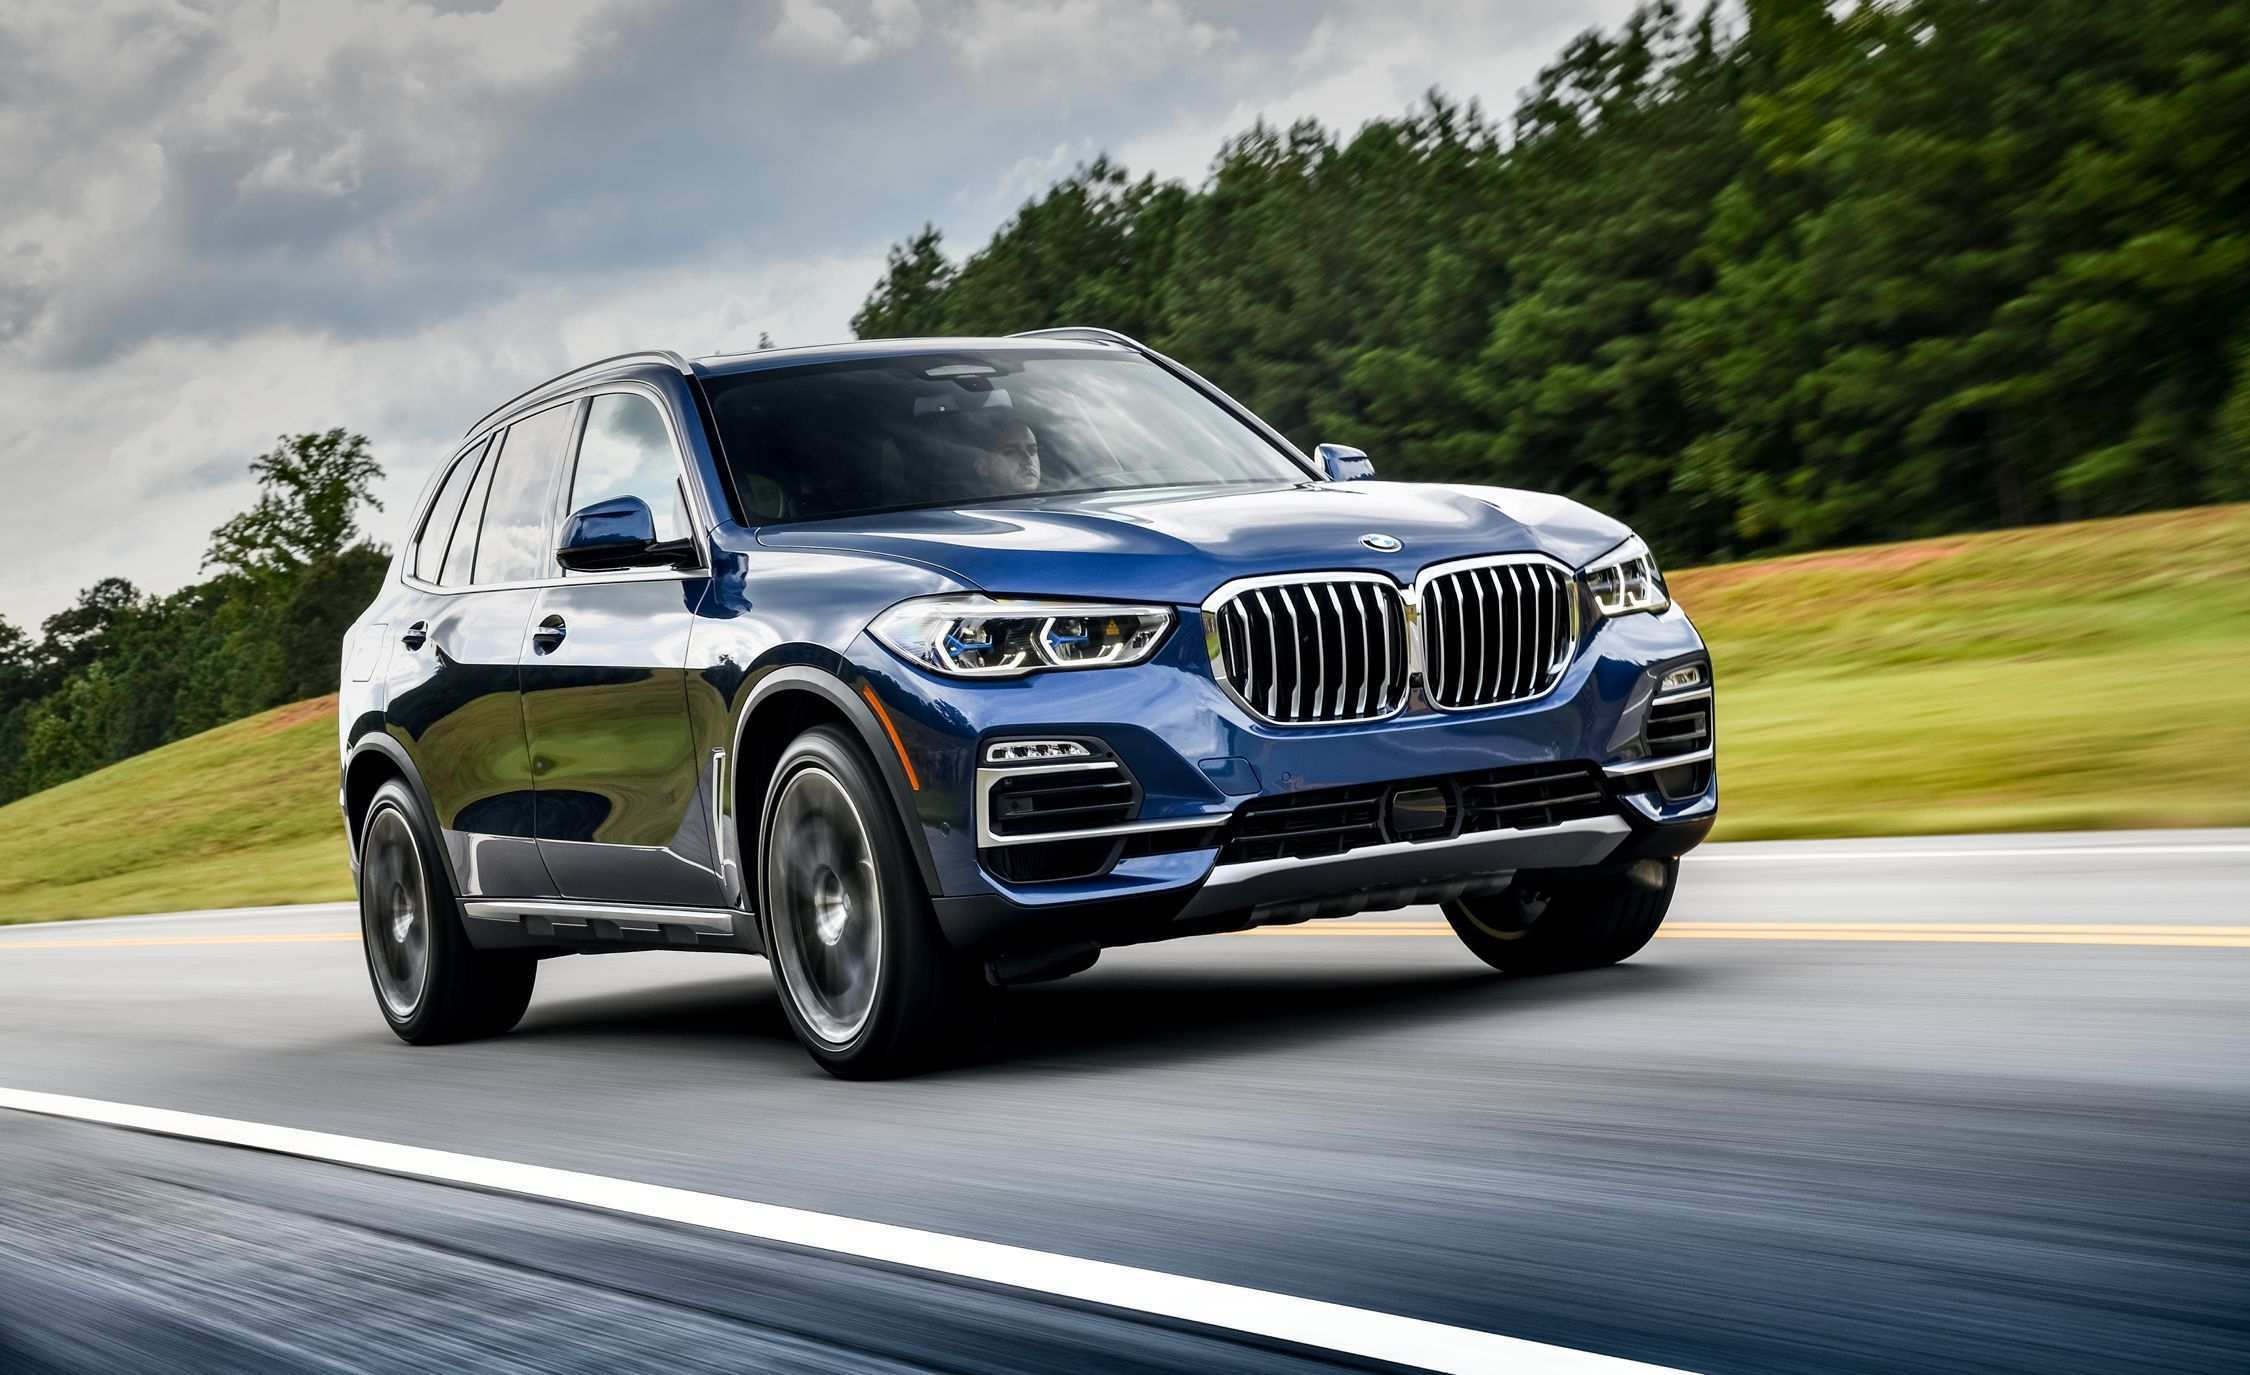 20 All New 2019 Bmw Half Ton Diesel Ratings with 2019 Bmw Half Ton Diesel